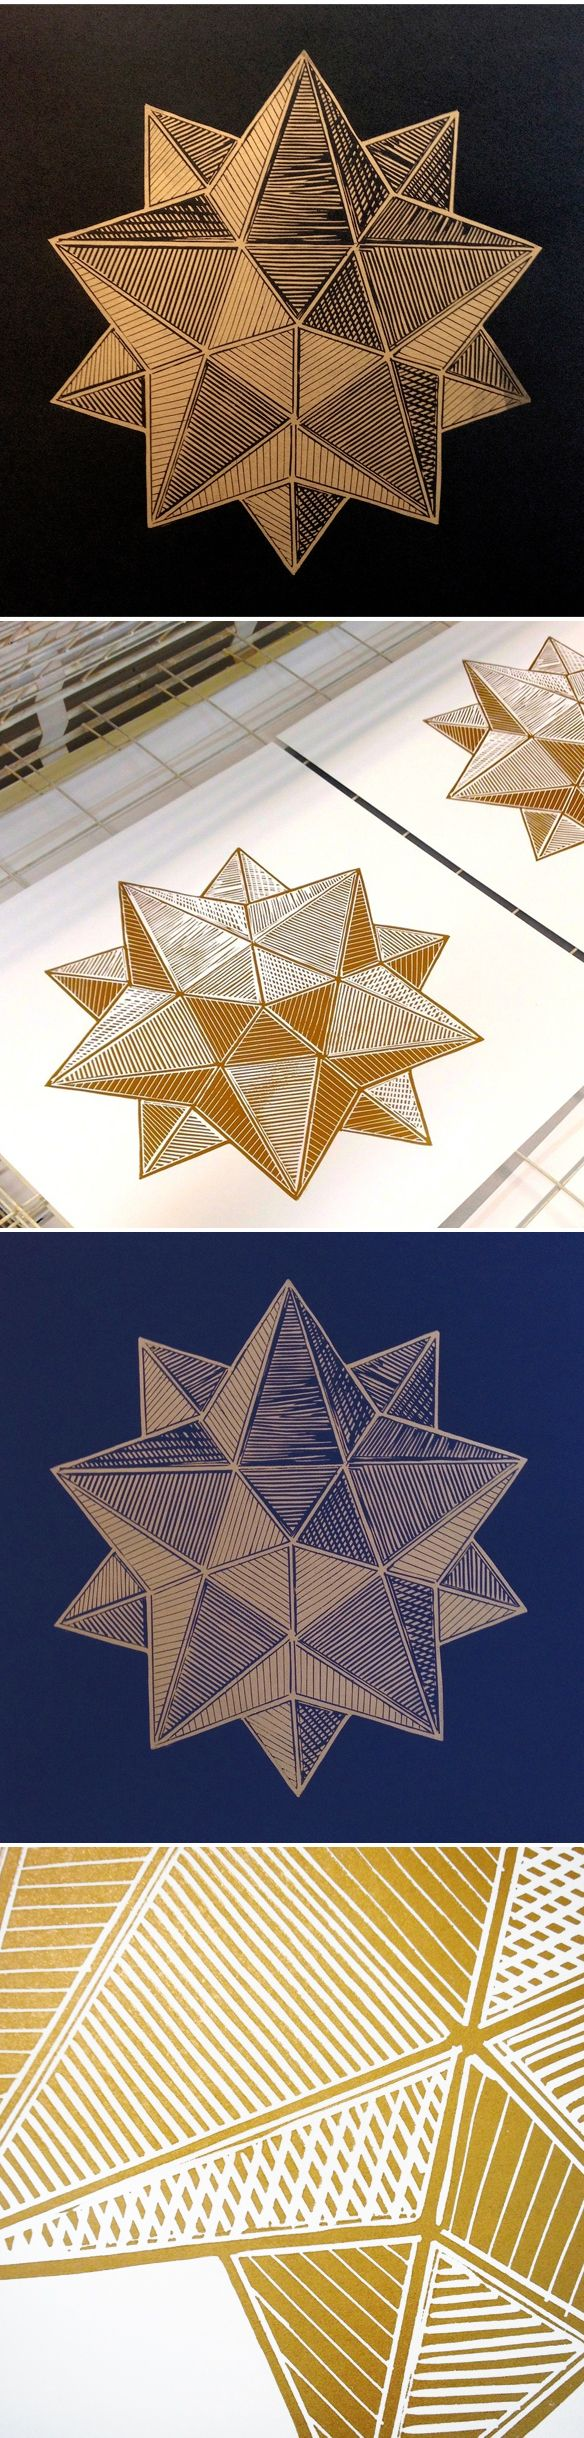 linocut prints by monika petersen (and metallic ink!)